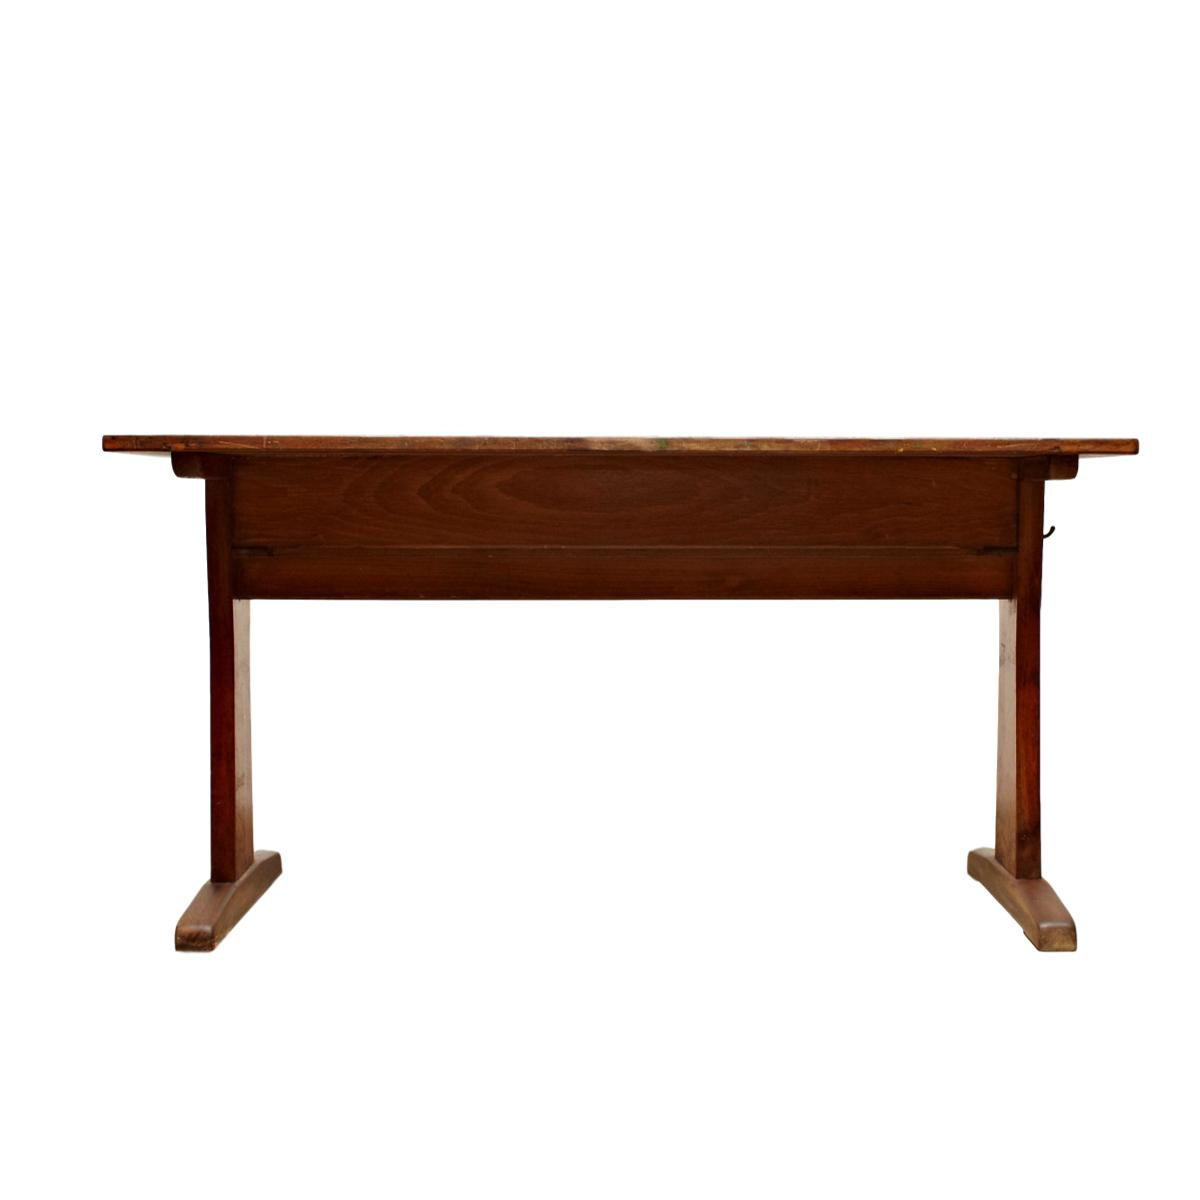 1960s Mid-Century Casala Children's School Desk in Wood, Carl Sasse